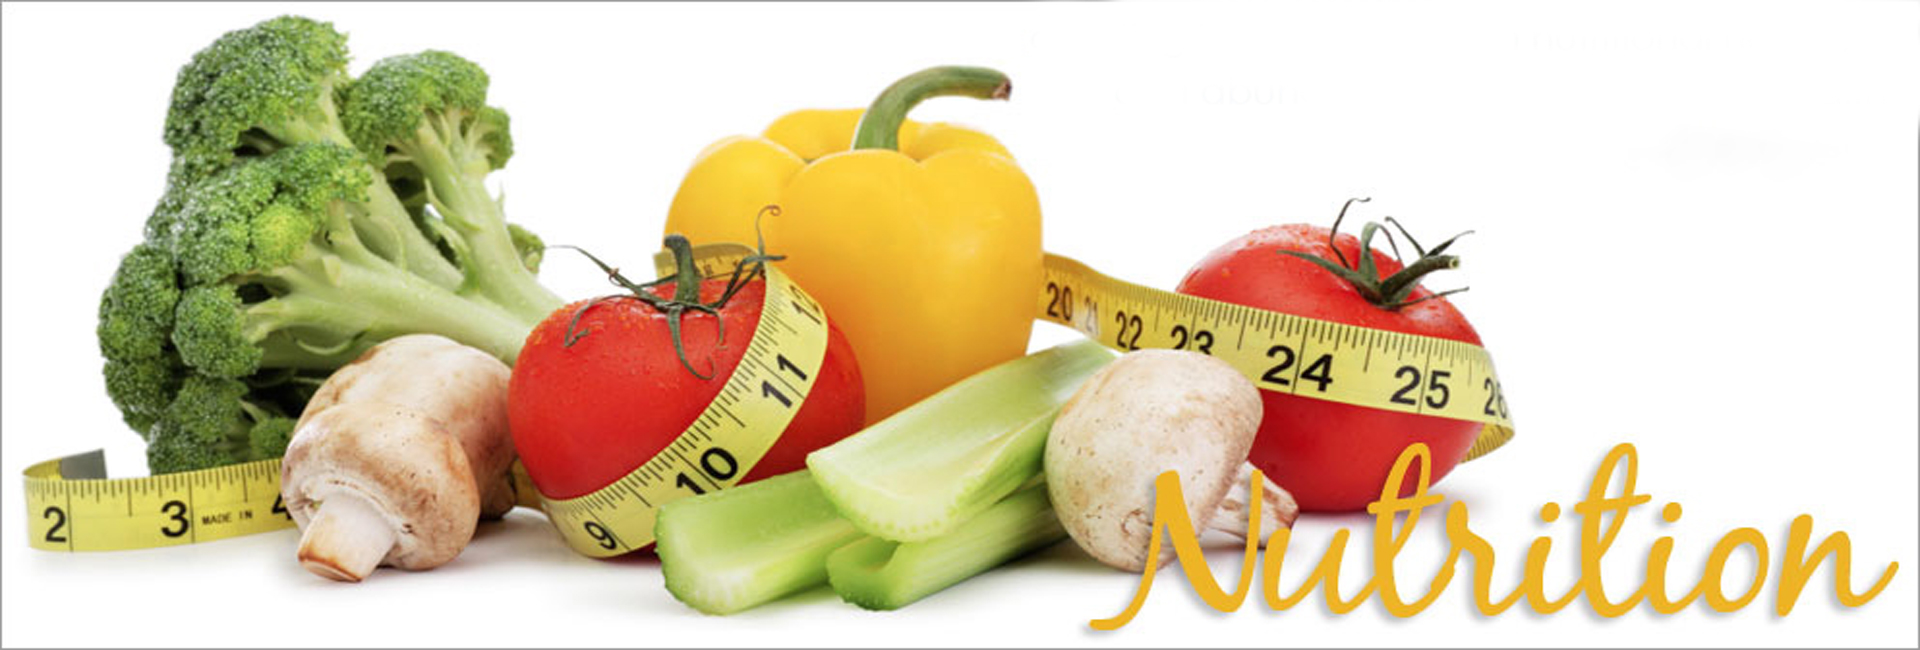 Diet For Sports Nutrition In Al Manama